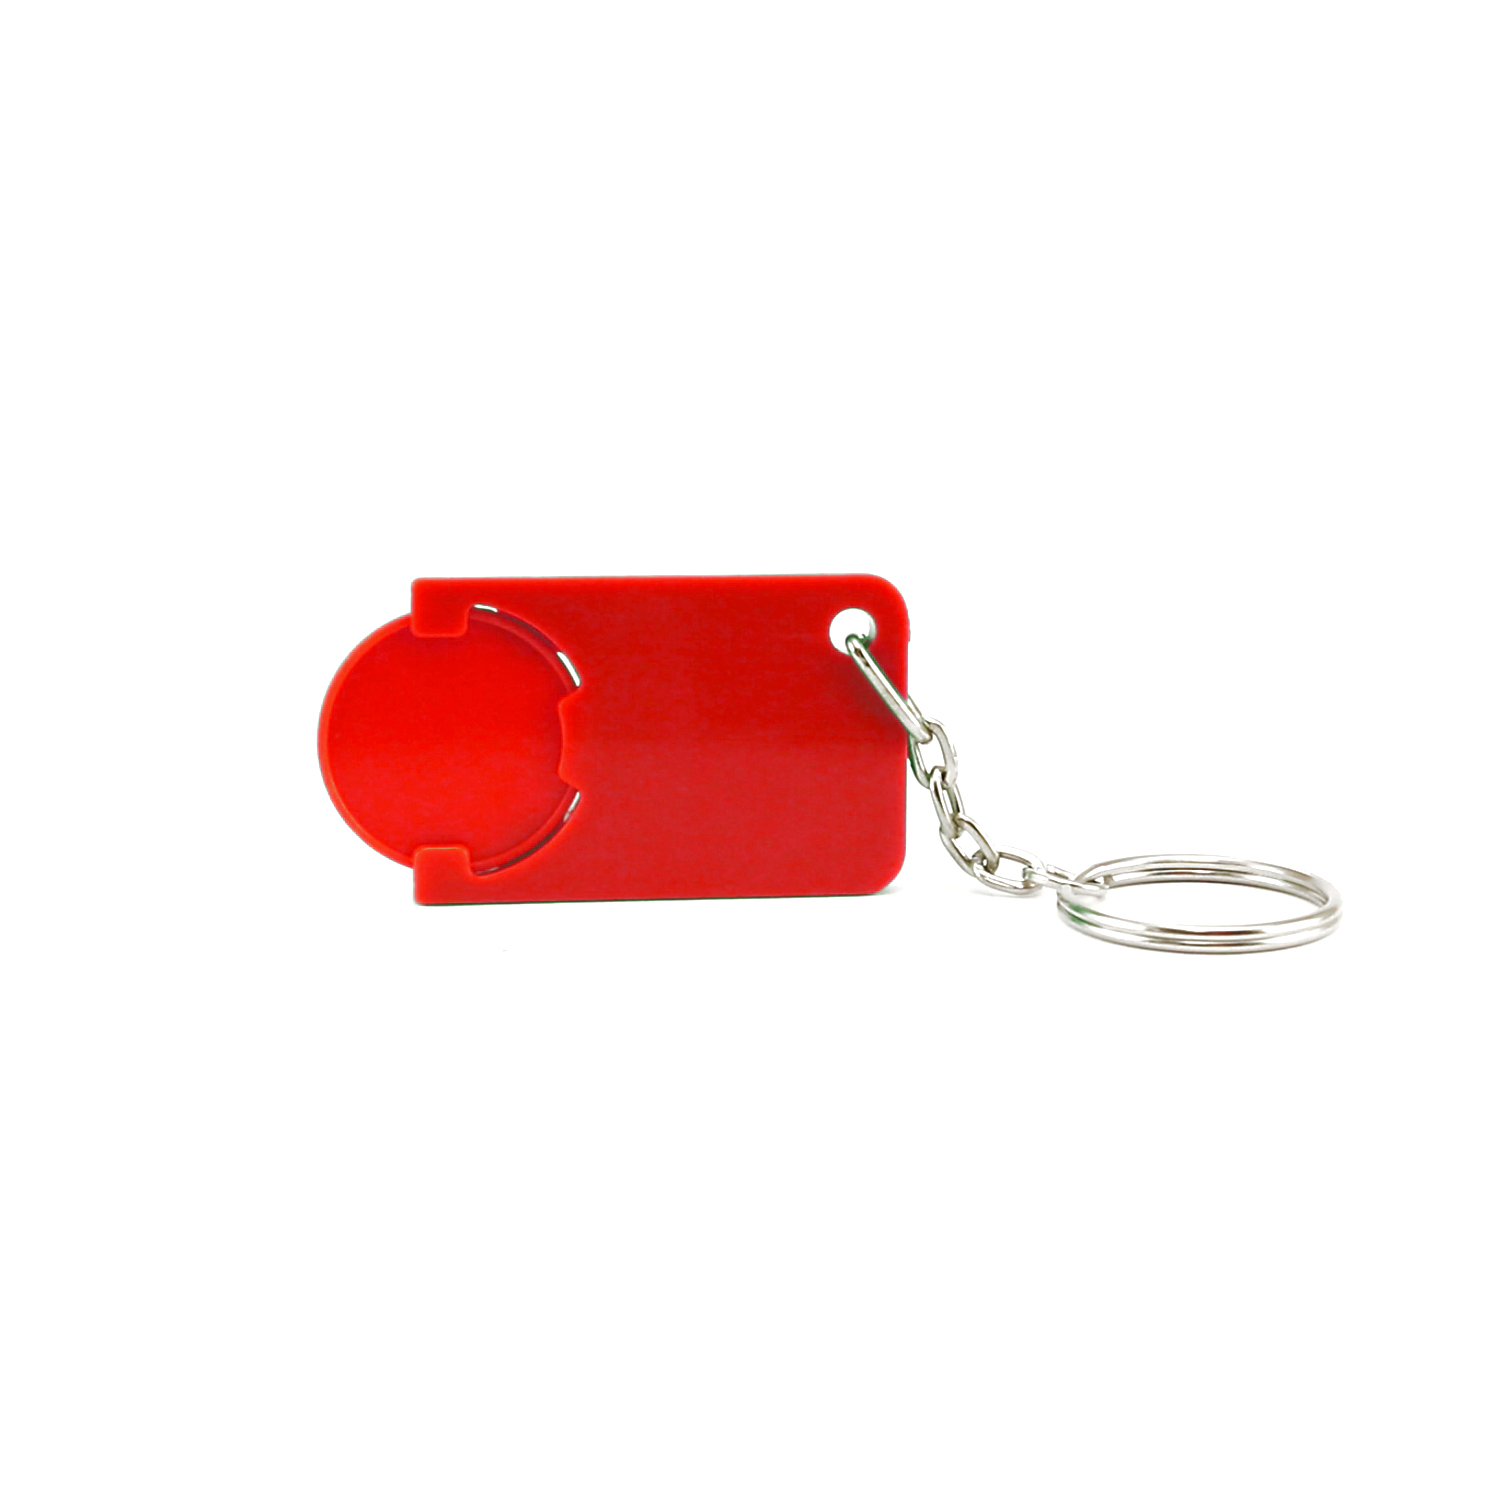 Keychain 039 (Shopping Trolley coin keychain) - hmi47039-04 (Red)